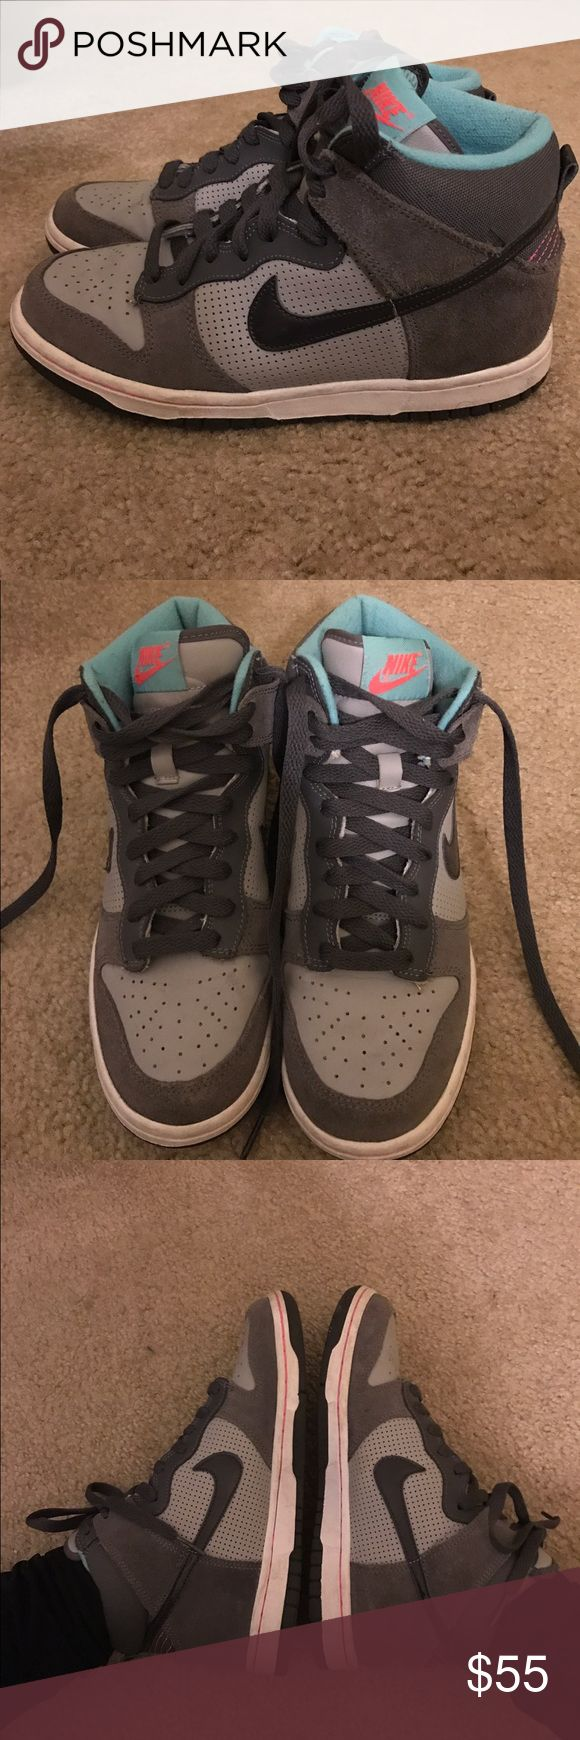 Women's Nike High Top Dunks Only worn a few times! So comfortable and the colors match anything. They are dark and light gray with a black swoosh and turquoise inside. Can fit a 7/7.5. Price negotiable! Nike Shoes Sneakers